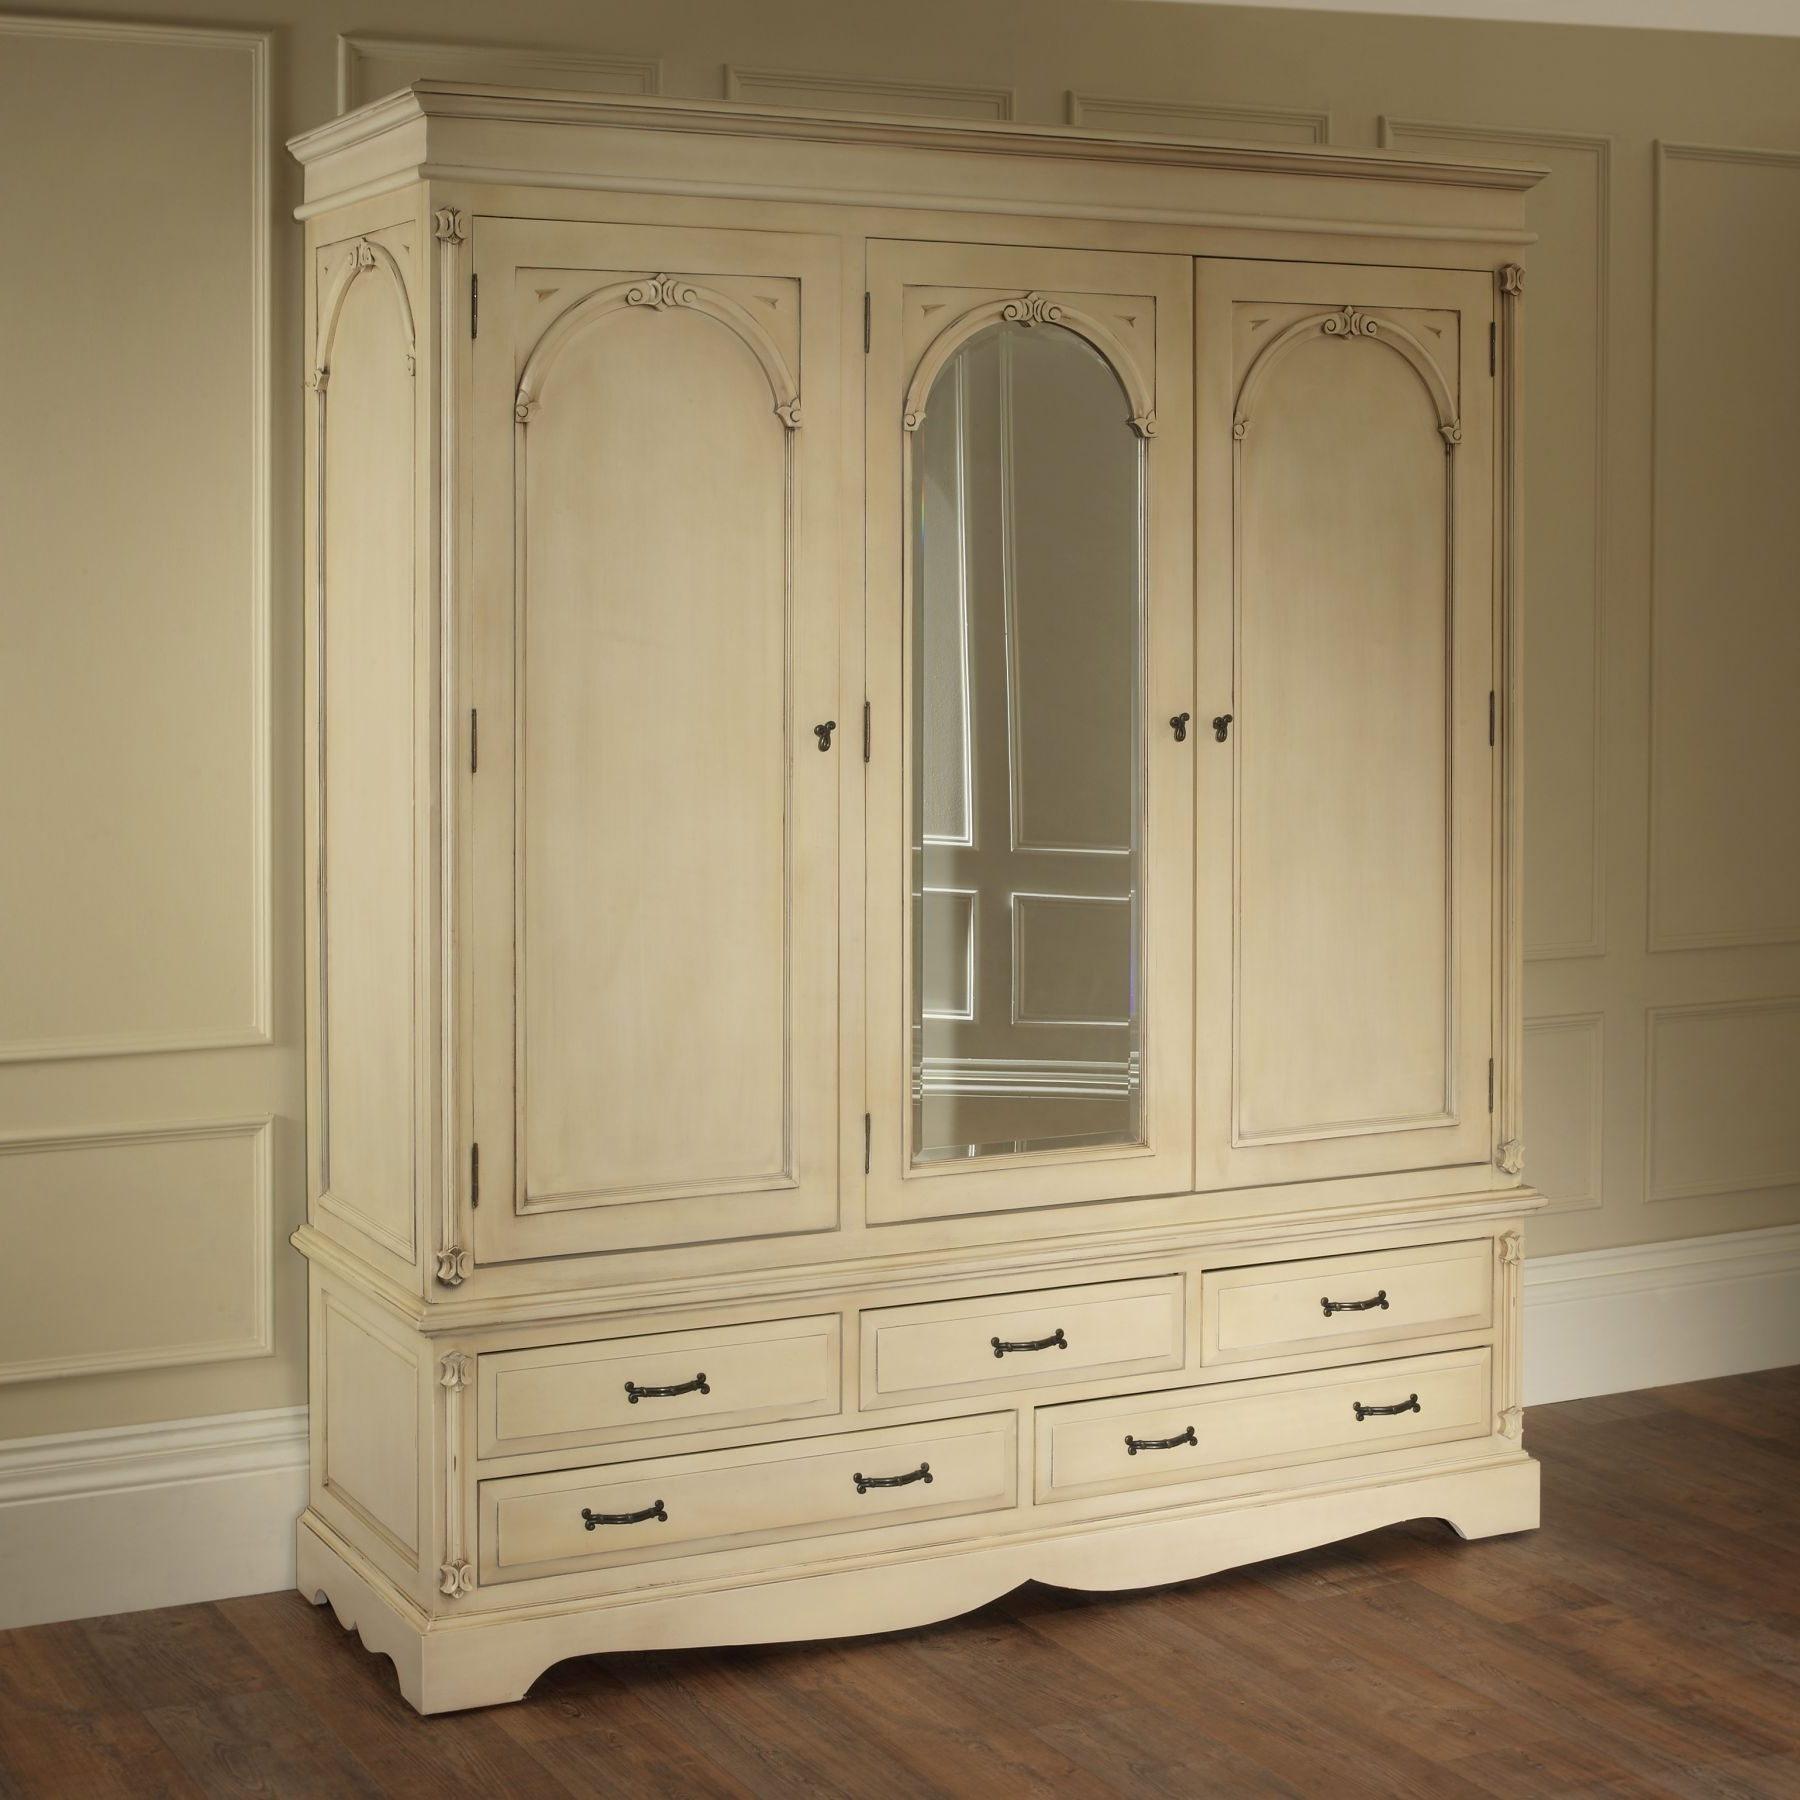 Most Popular Victorian Antique French Wardrobe Works Wonderful Alongside Our Intended For Victorian Style Wardrobes (View 5 of 15)